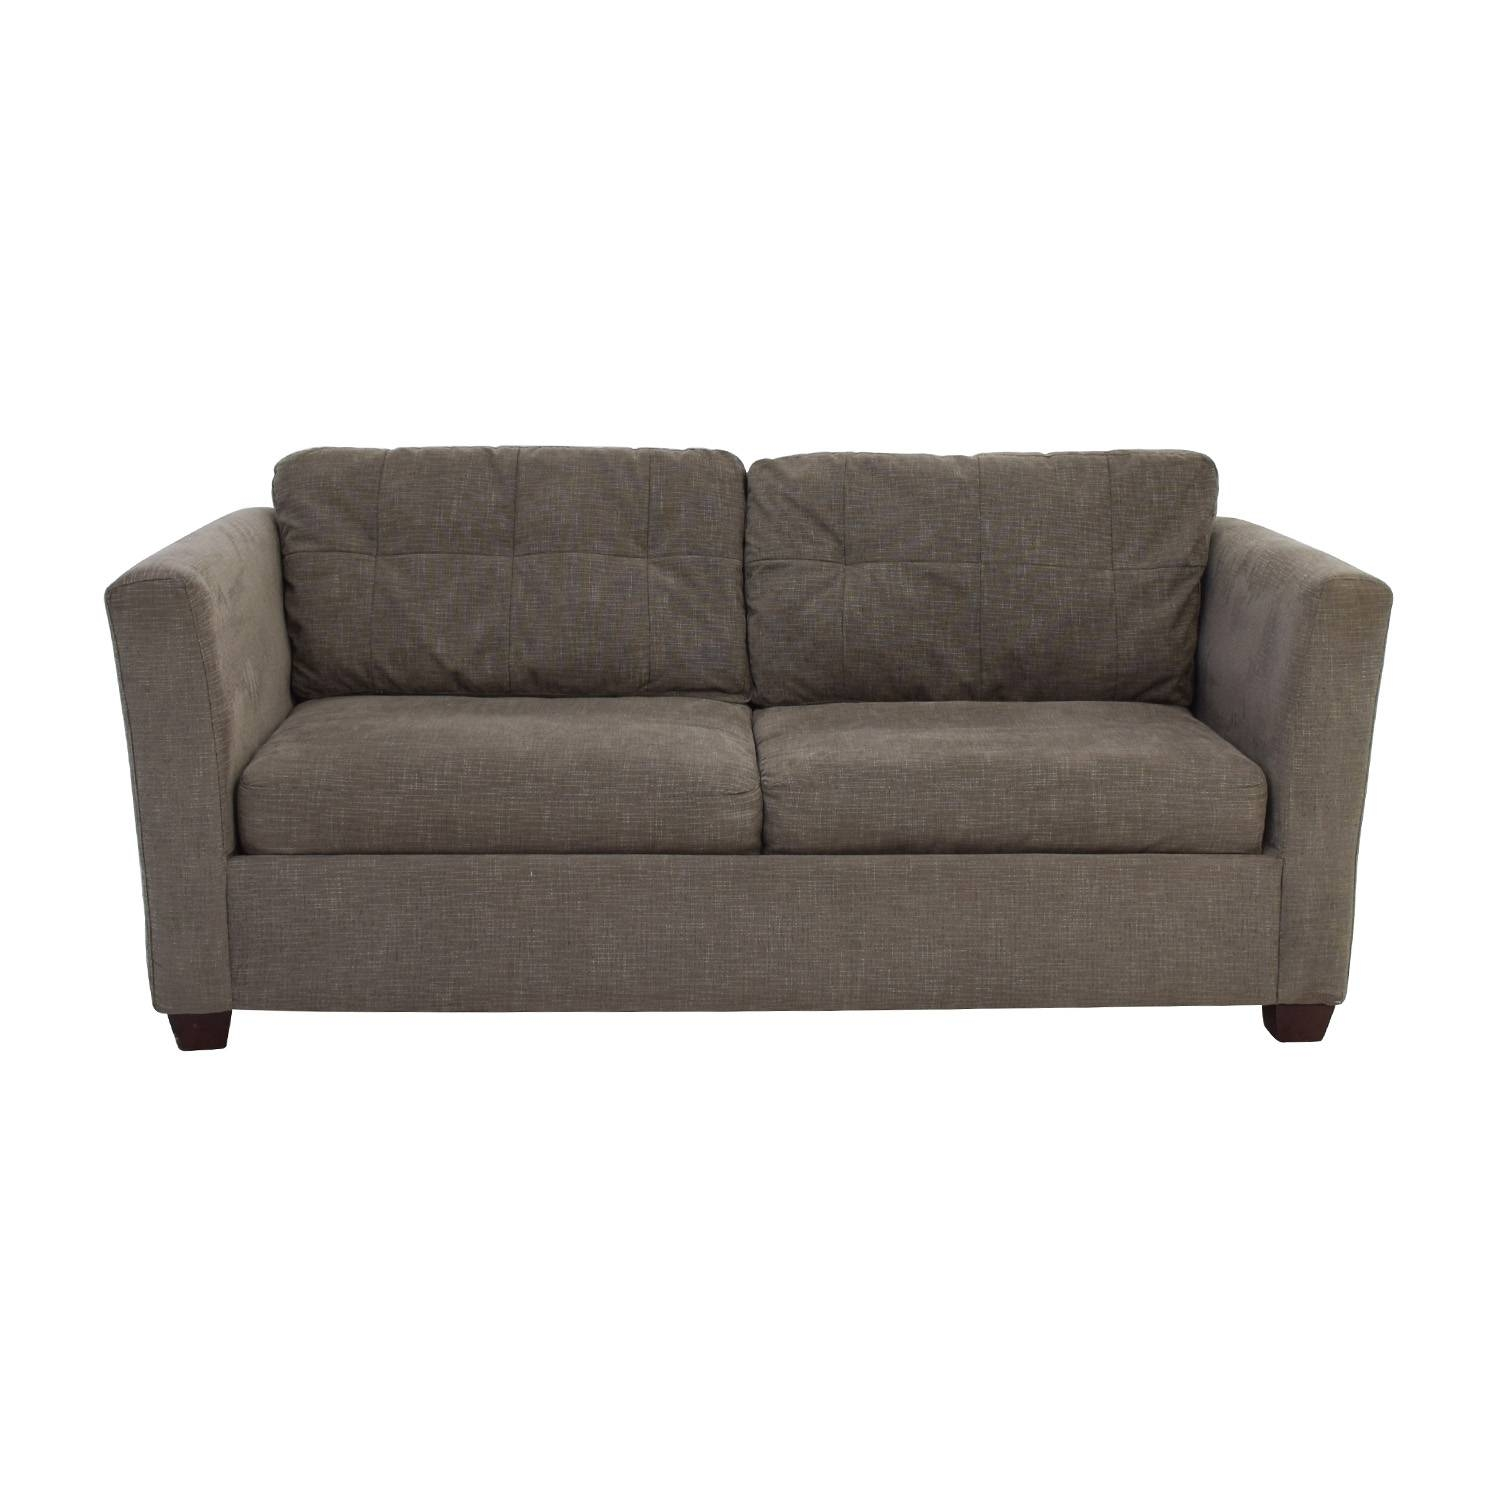 58% Off   Bauhaus Bauhaus Grey Queen Sleeper Sofa / Sofas Regarding Bauhaus Sectional Sofas (Photo 11 of 30)